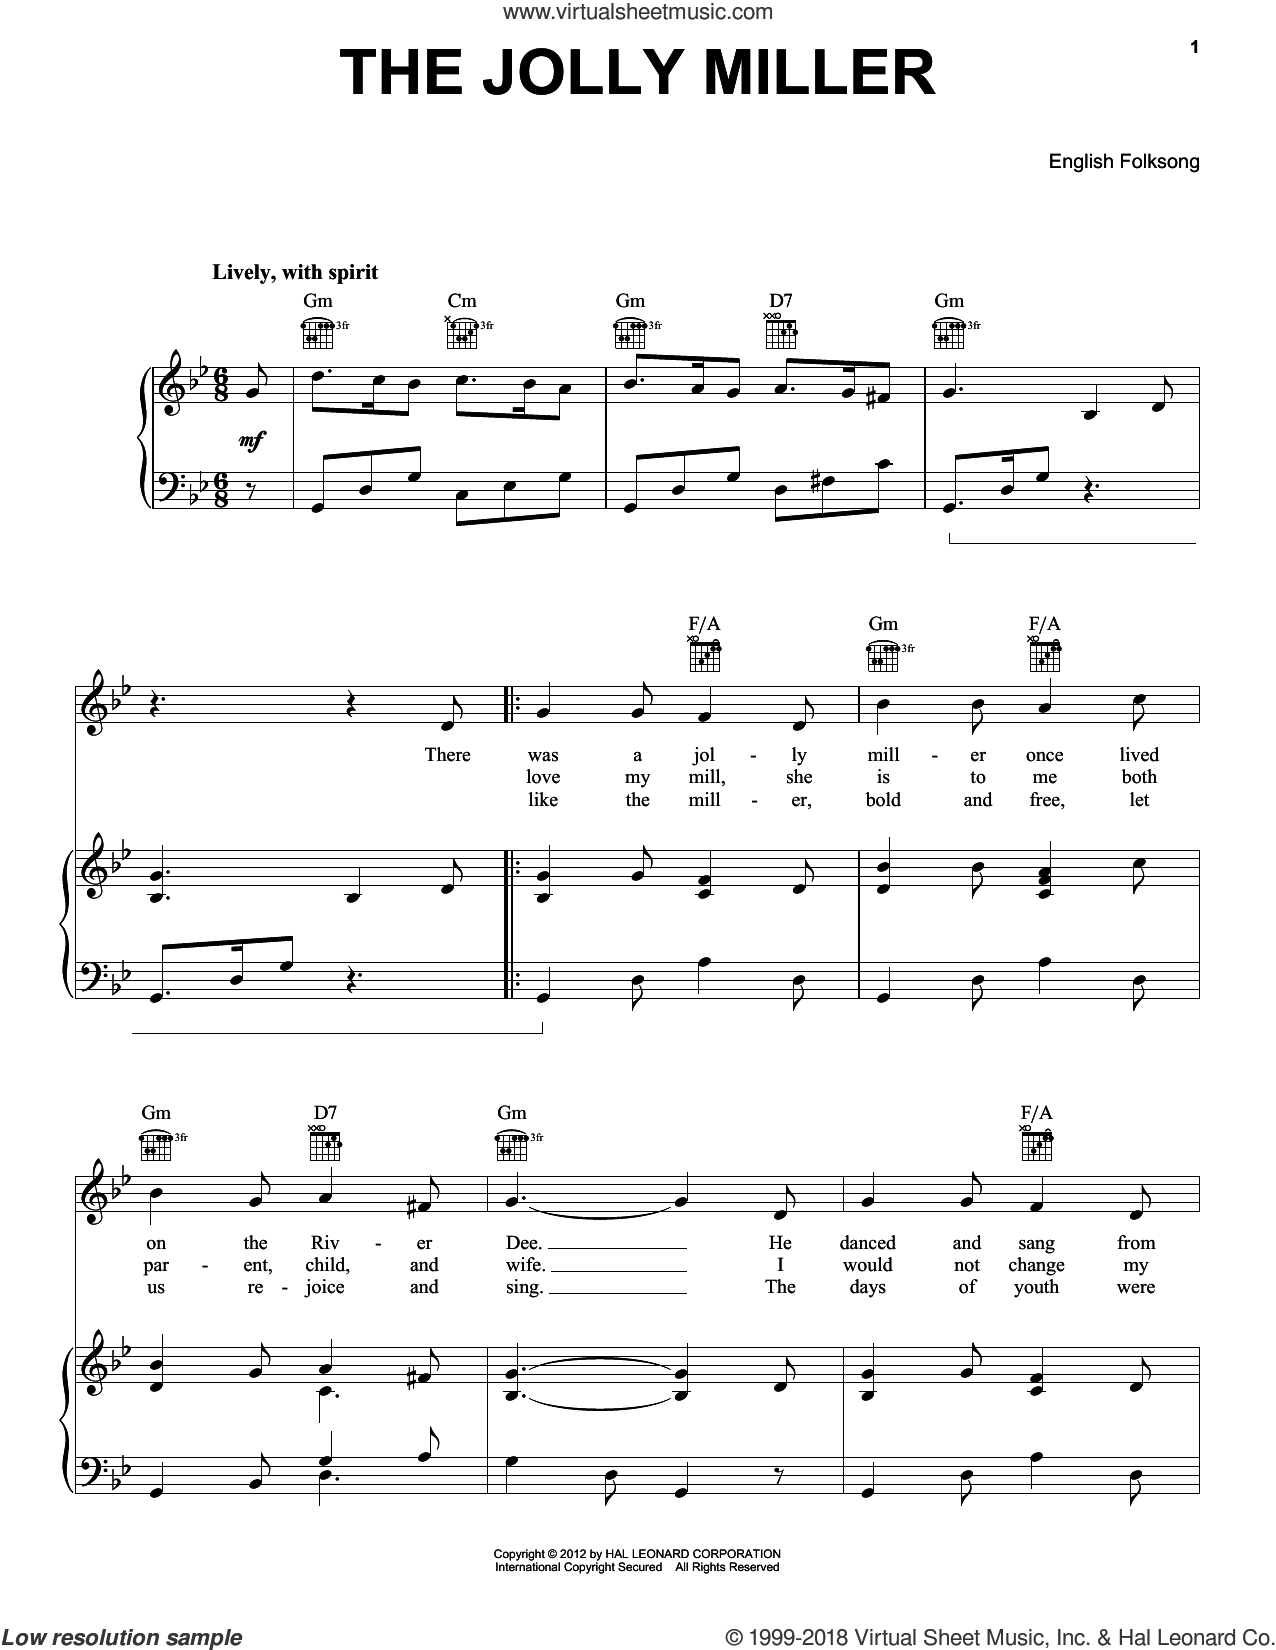 Jolly Miller sheet music for voice, piano or guitar, intermediate